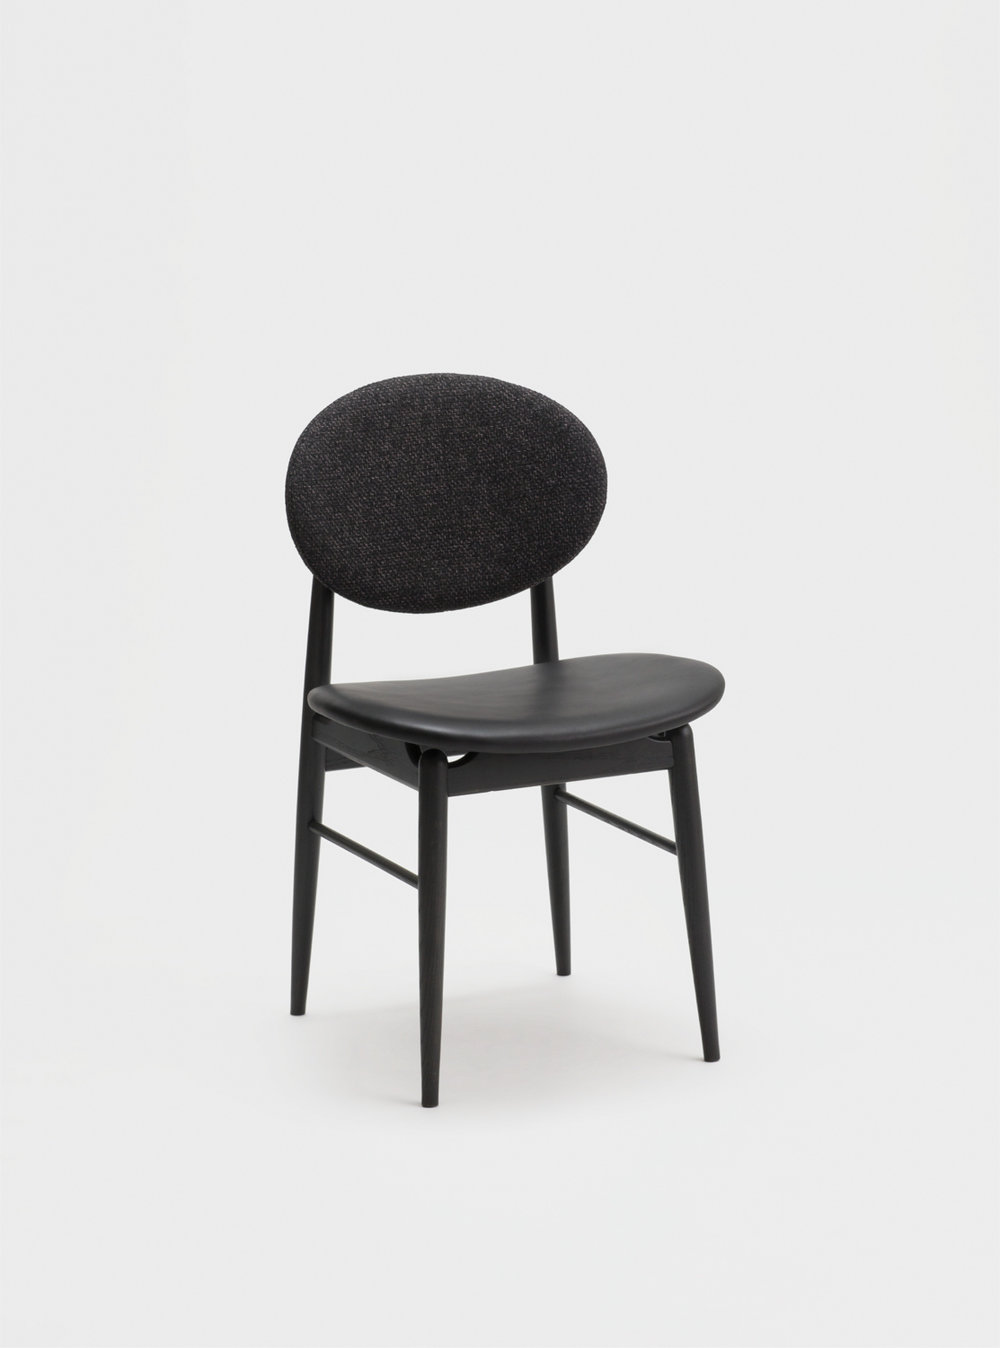 Ariake Outline Chair - Sumi Ash/Leather Seat & Fabric Back